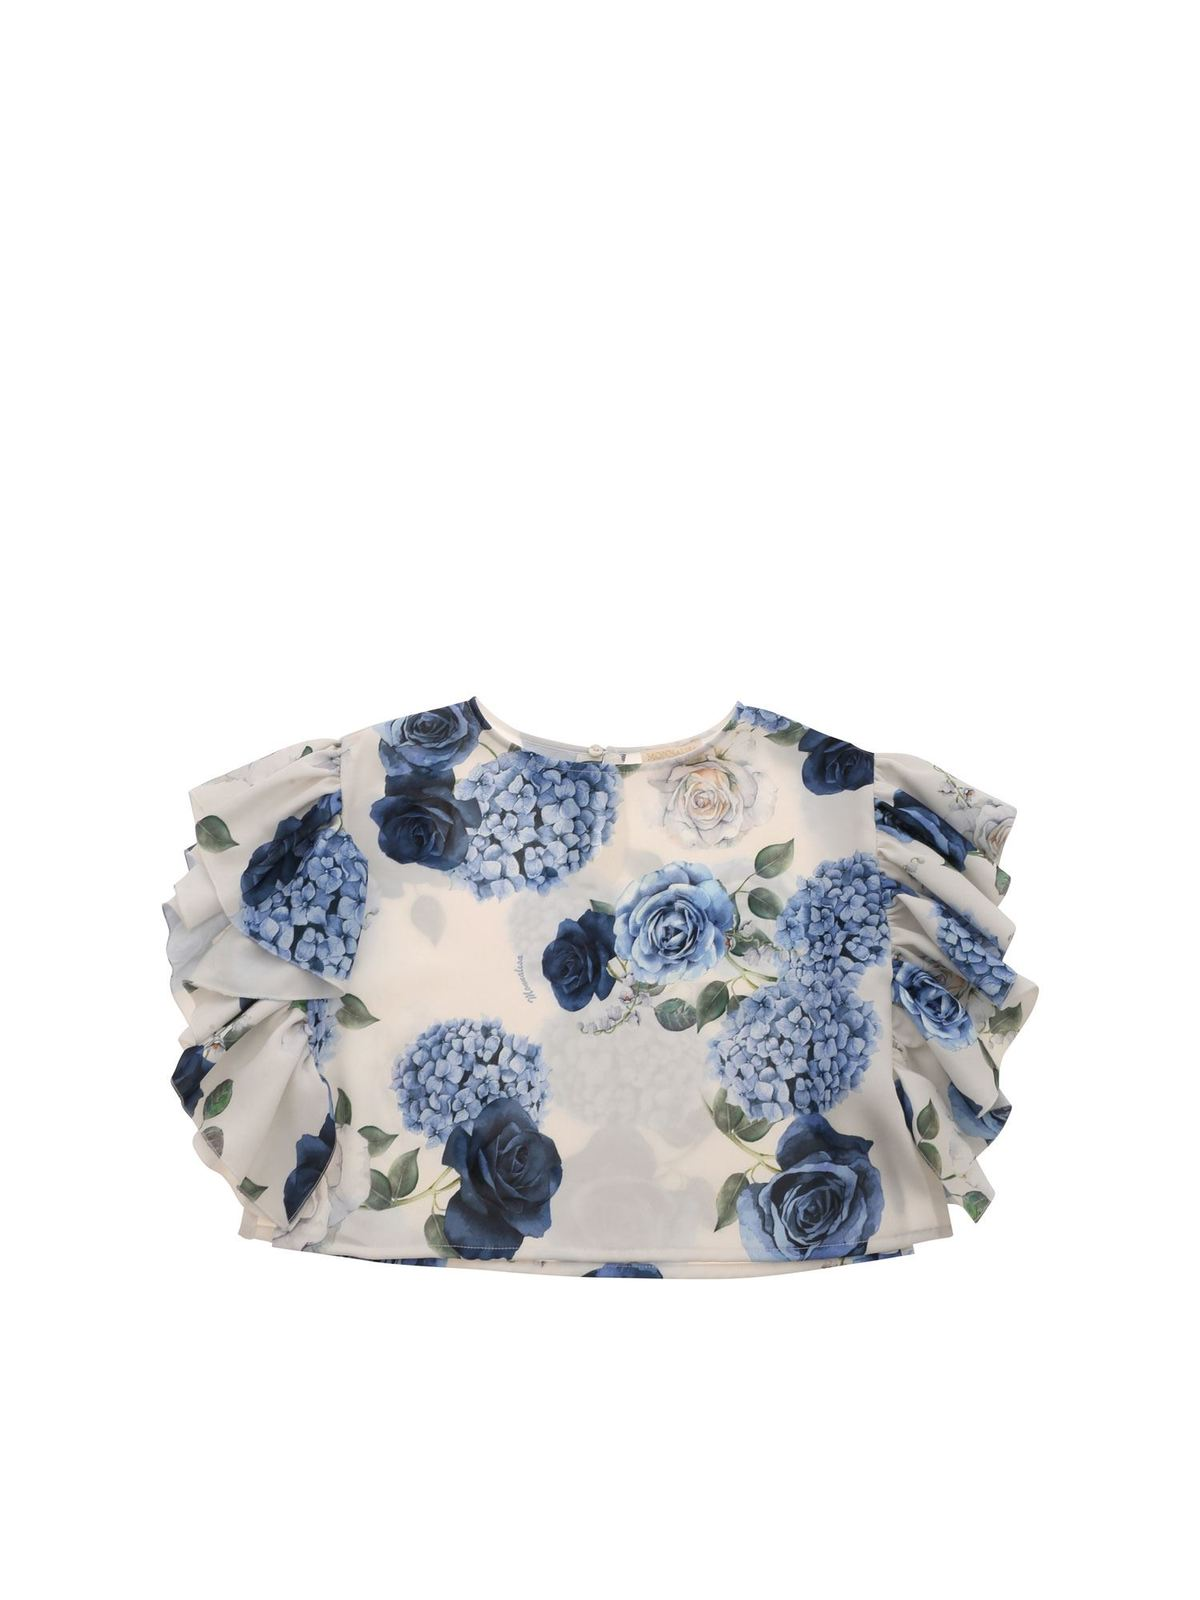 Monnalisa HYDRANGEA PRINT TOP IN WHITE AND BLUE